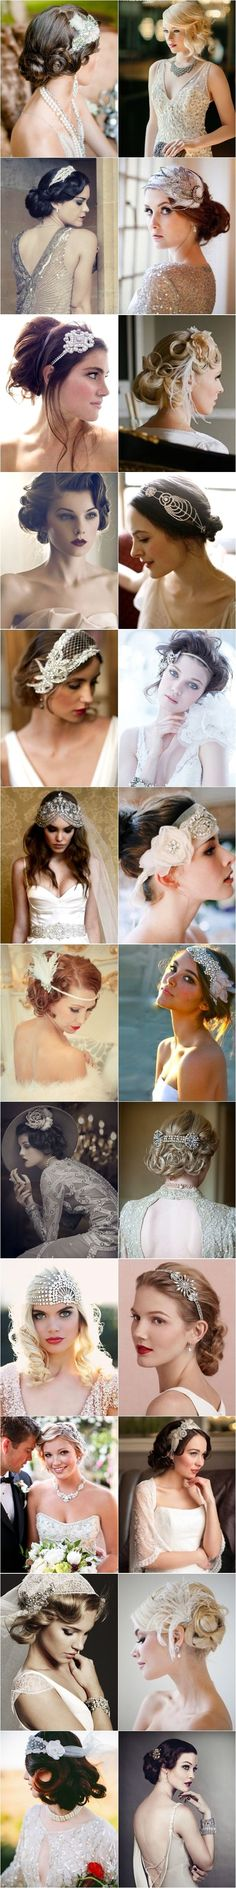 Wedding Philippines - 1920s Gatsby Glam Inspired Hairstyles